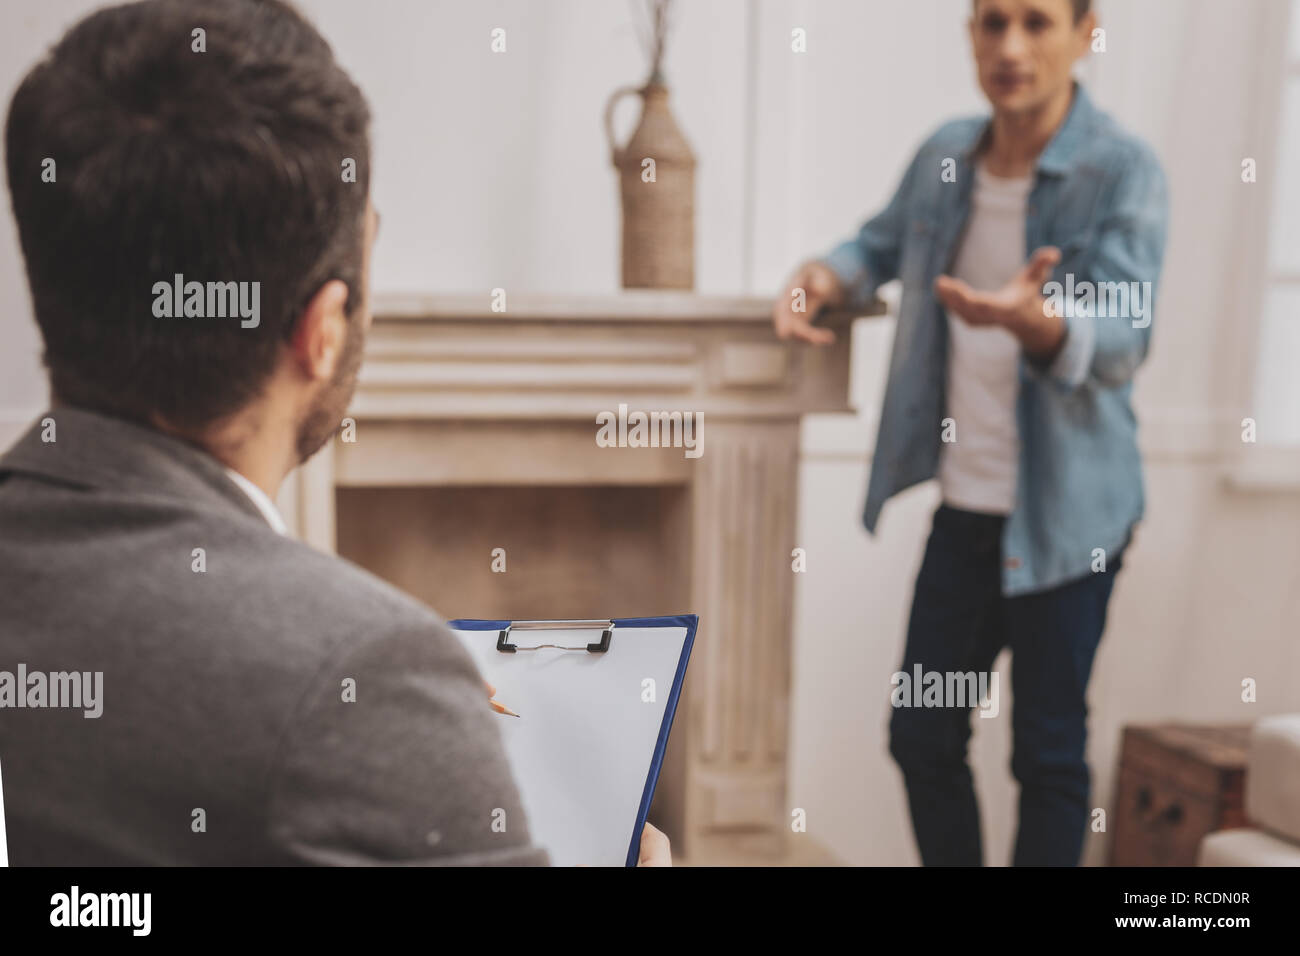 Observant psychologist making notes during therapy session - Stock Image